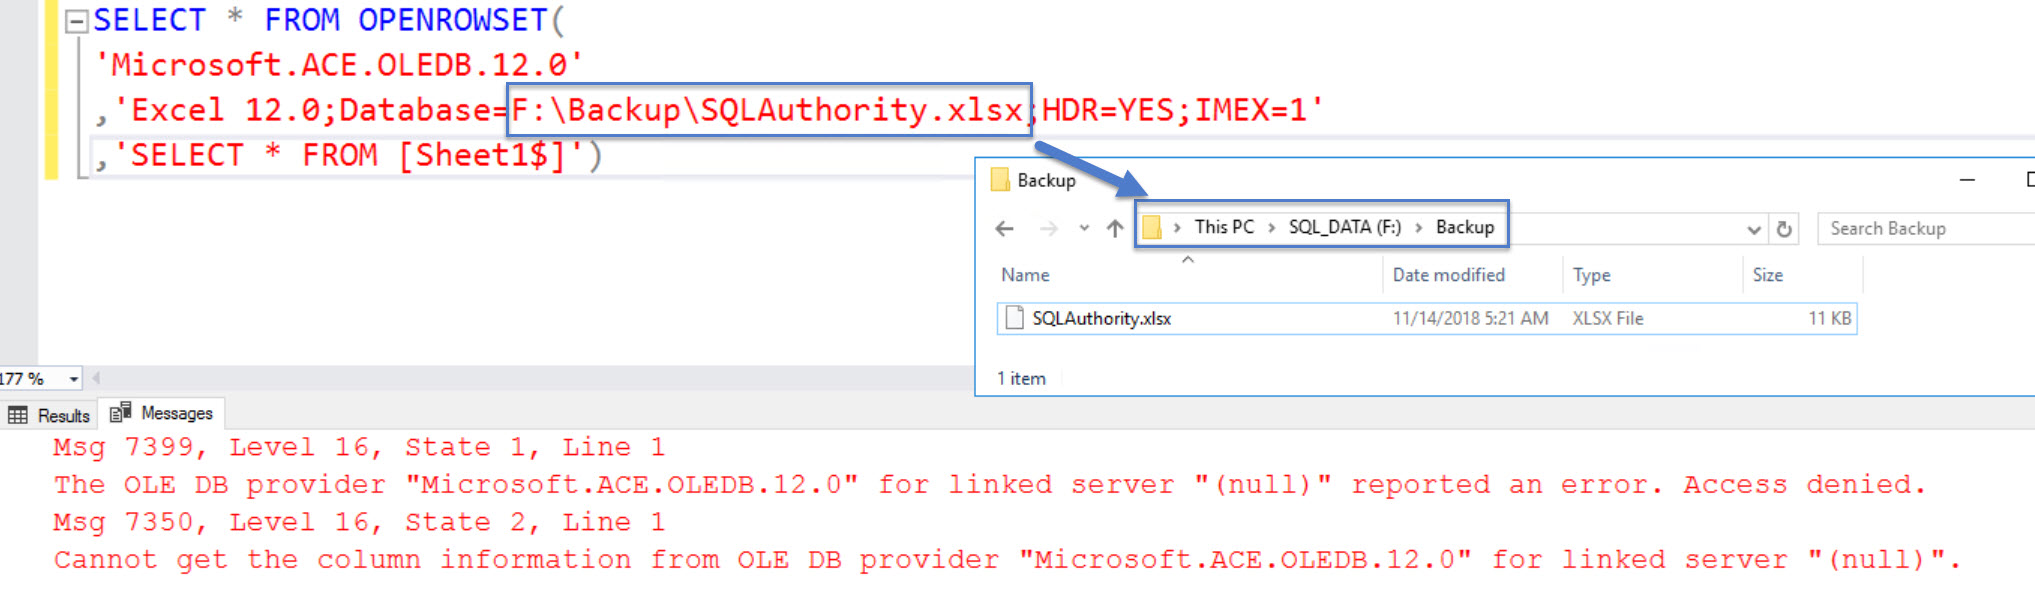 "SQL SERVER - The OLE DB Provider ""Microsoft.ACE.OLEDB.12.0"" for Linked Server ""(null)"" Reported an Error. Access Denied excel-ad-01"